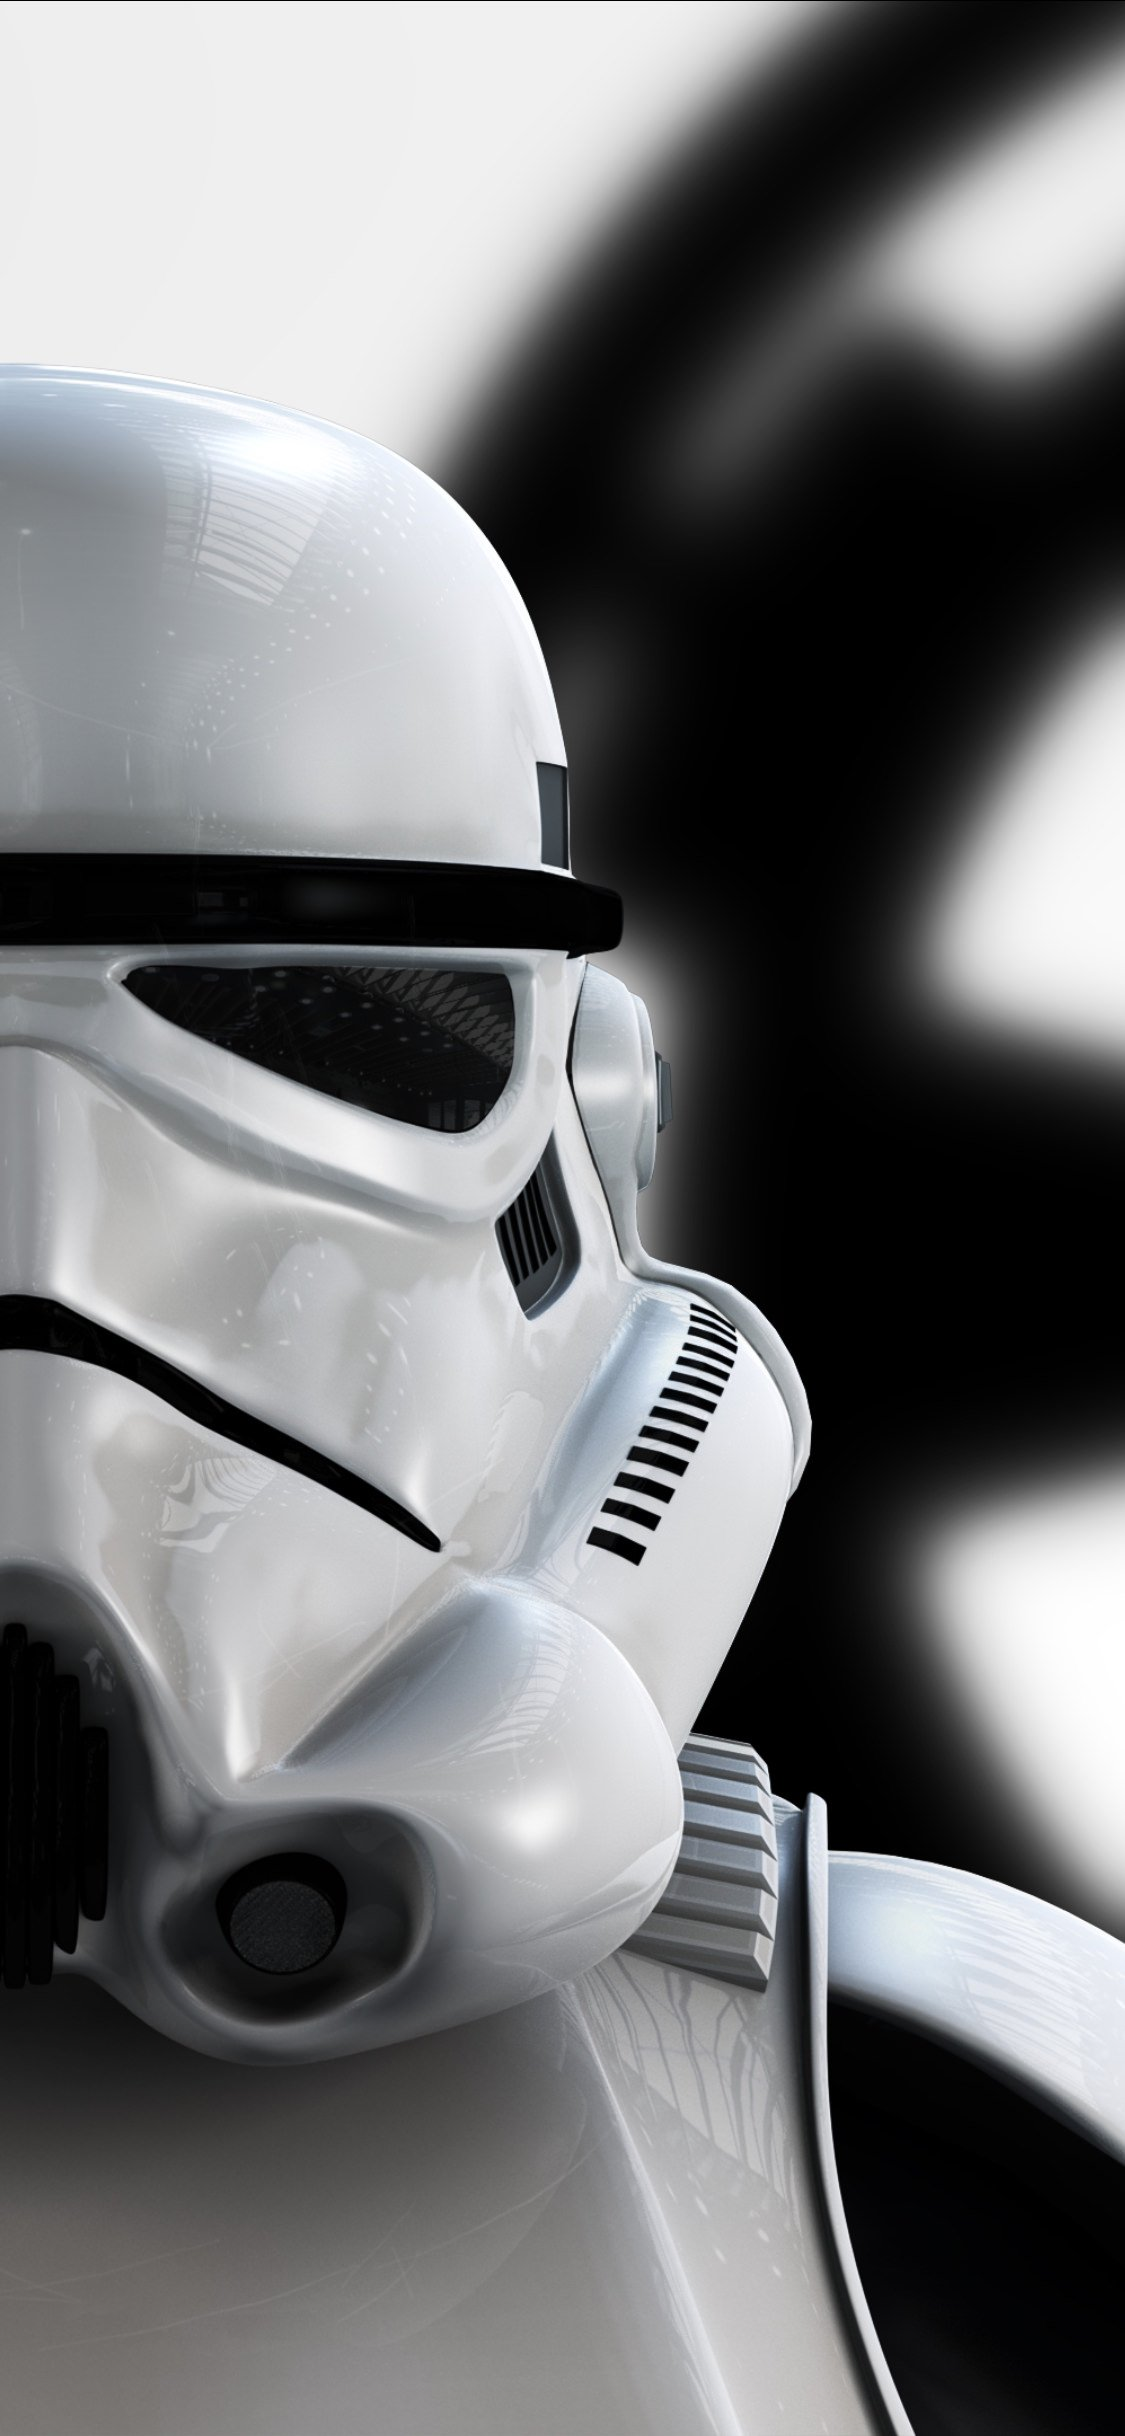 Stormtrooper Wallpaper Iphone Posted By Samantha Cunningham